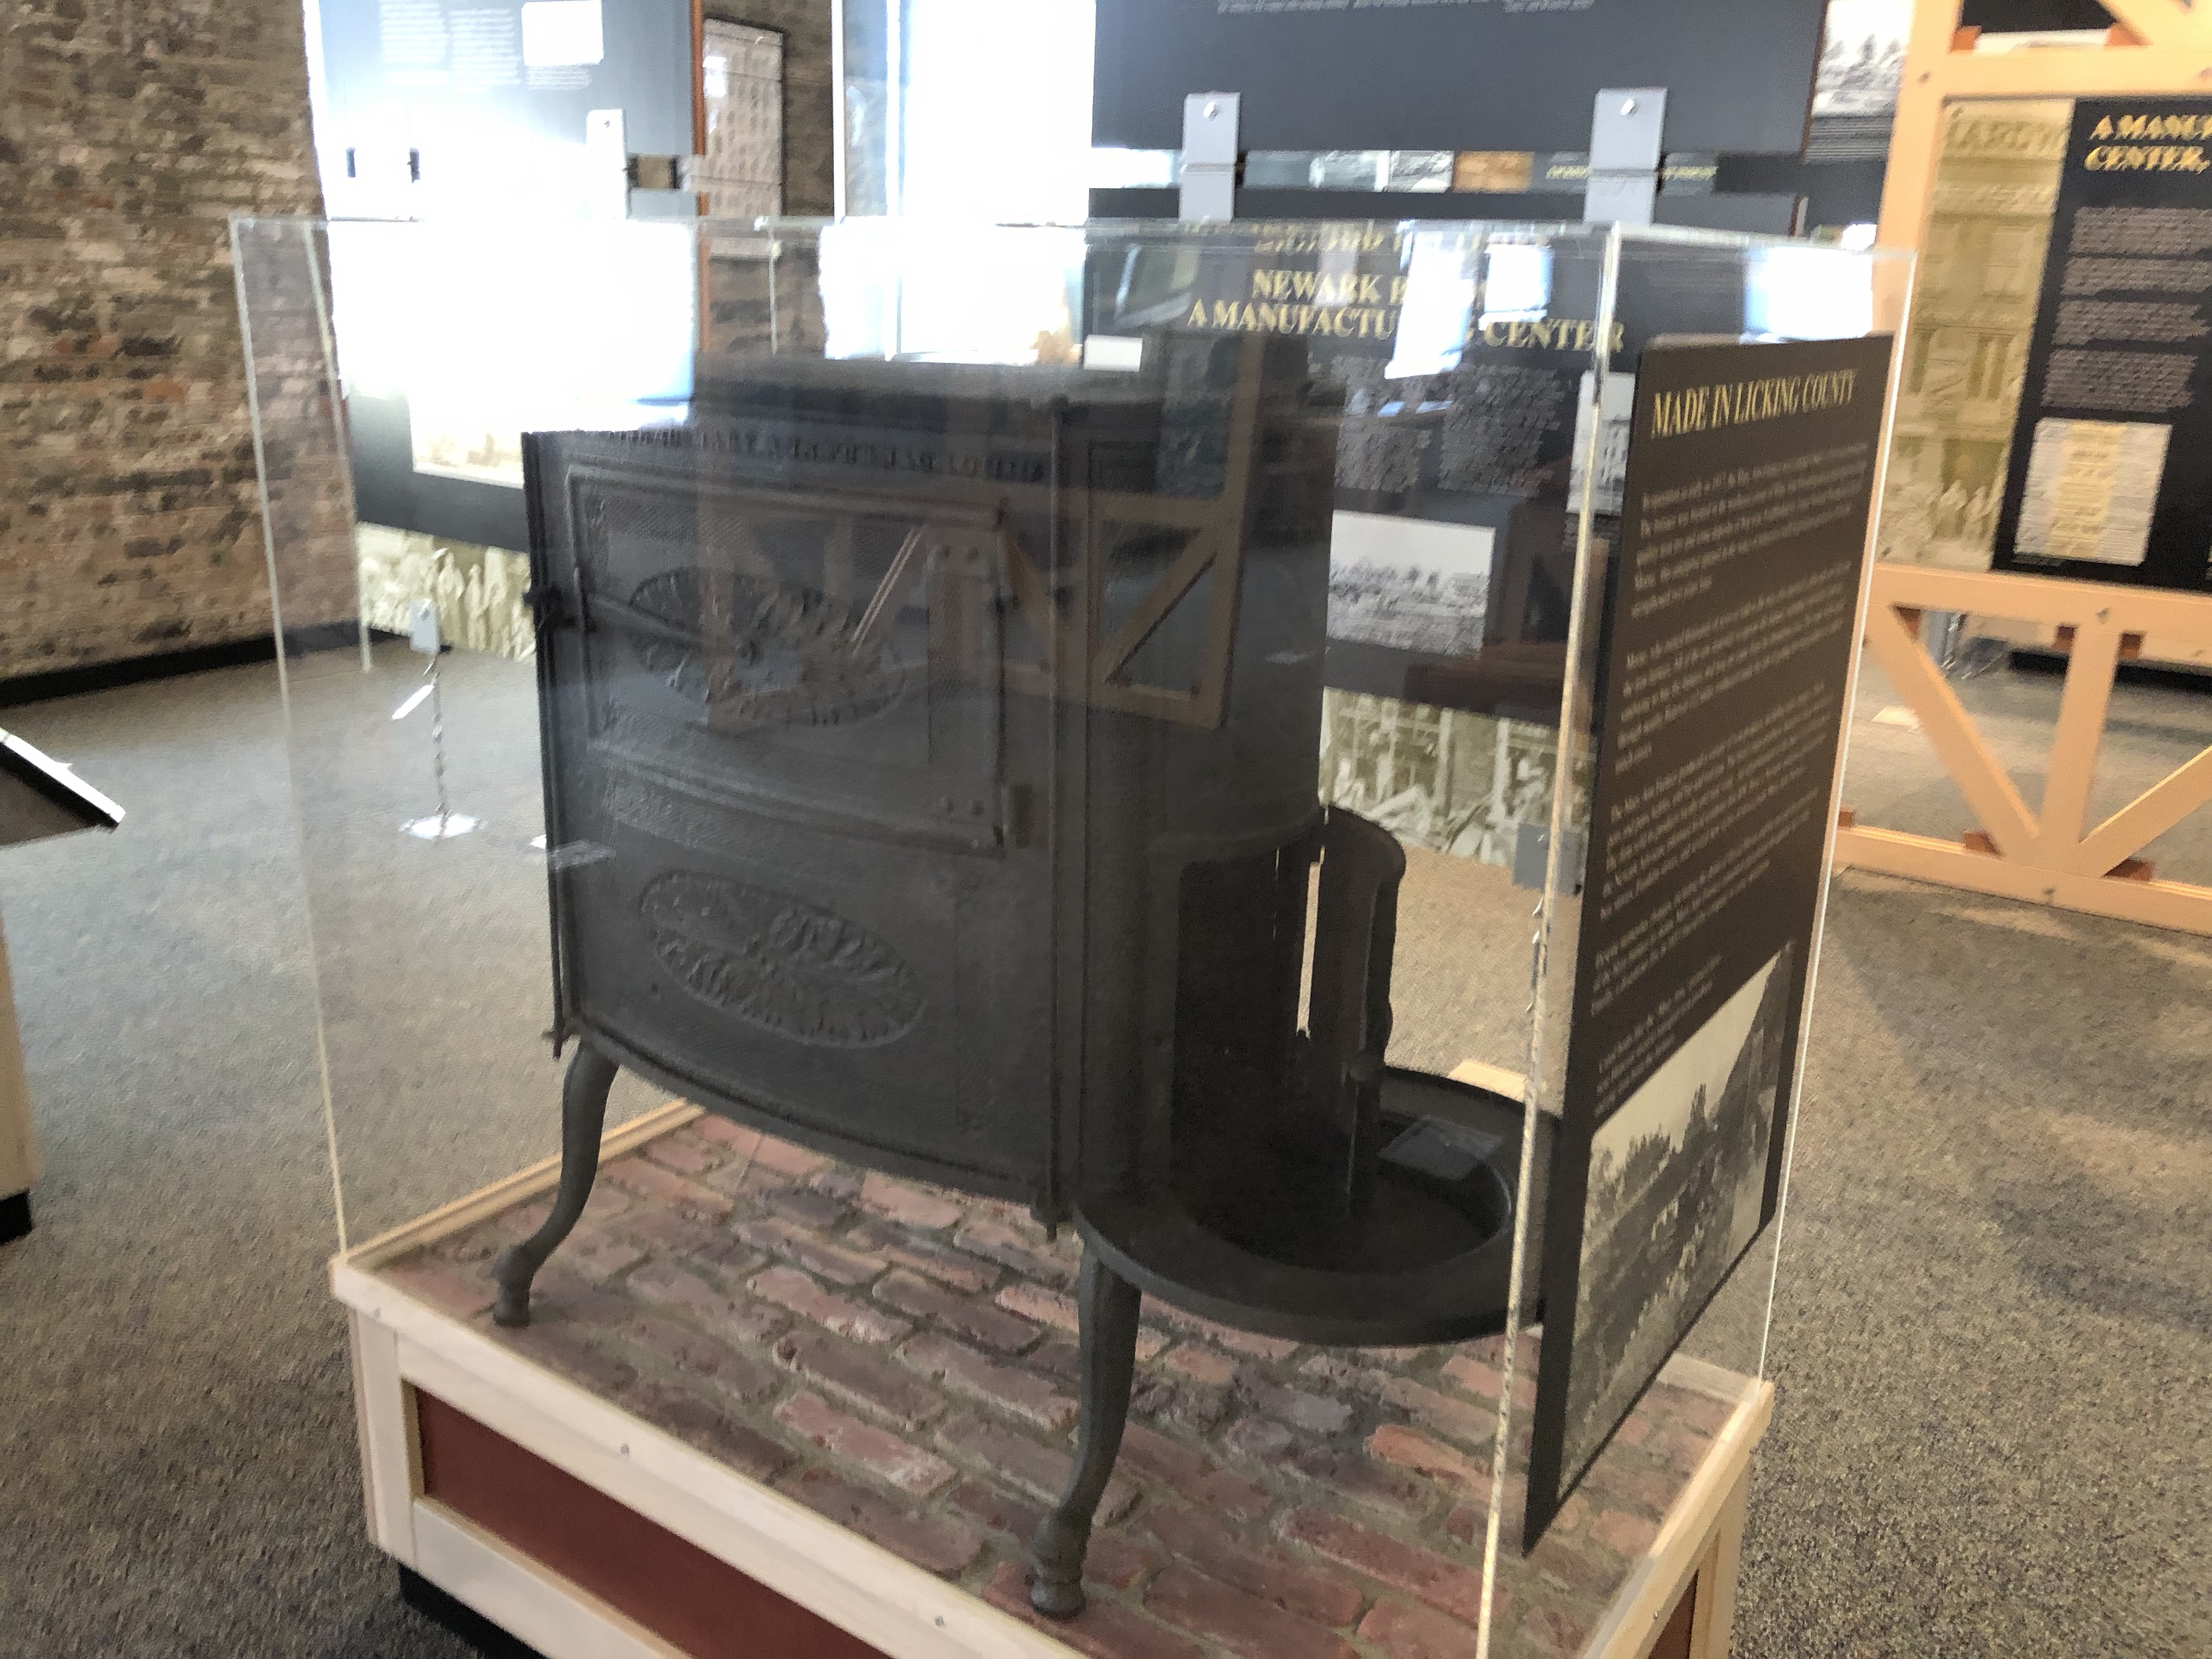 This stove was manufactured at the Mary Ann Furnace, Licking County's earliest factory.